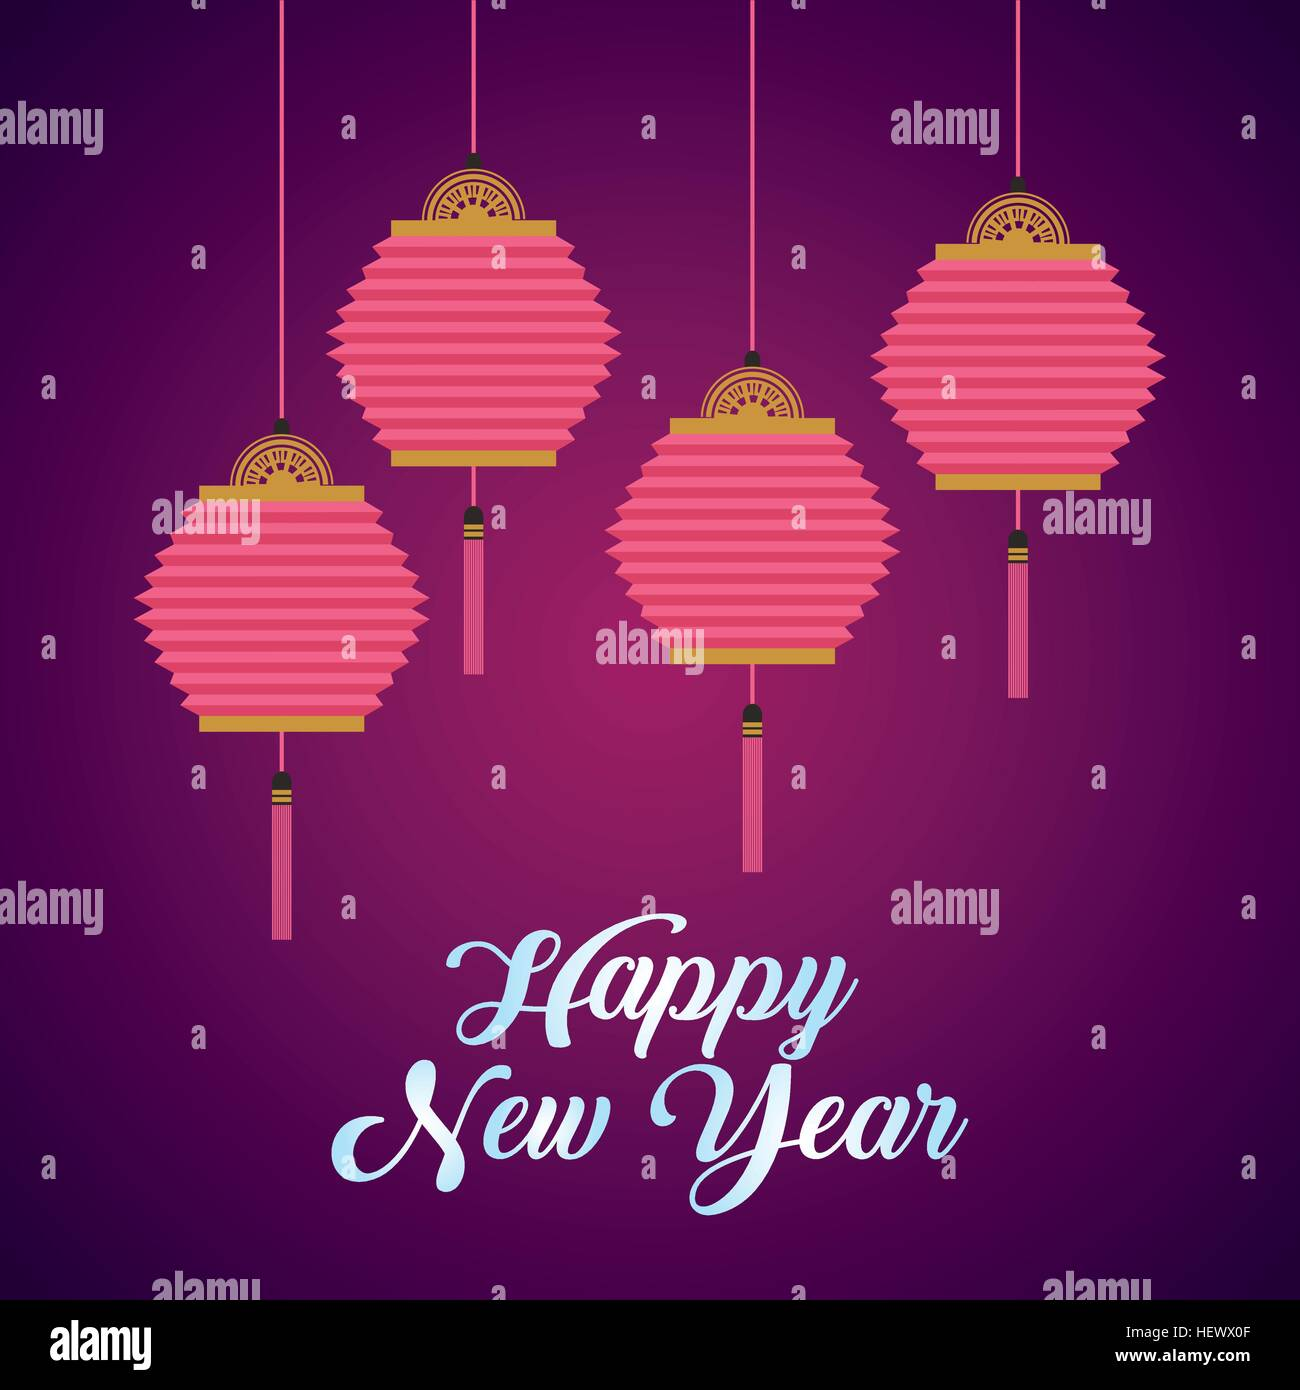 happy new year card with chinese lanterns hanging over purple background colorful design vector illustration